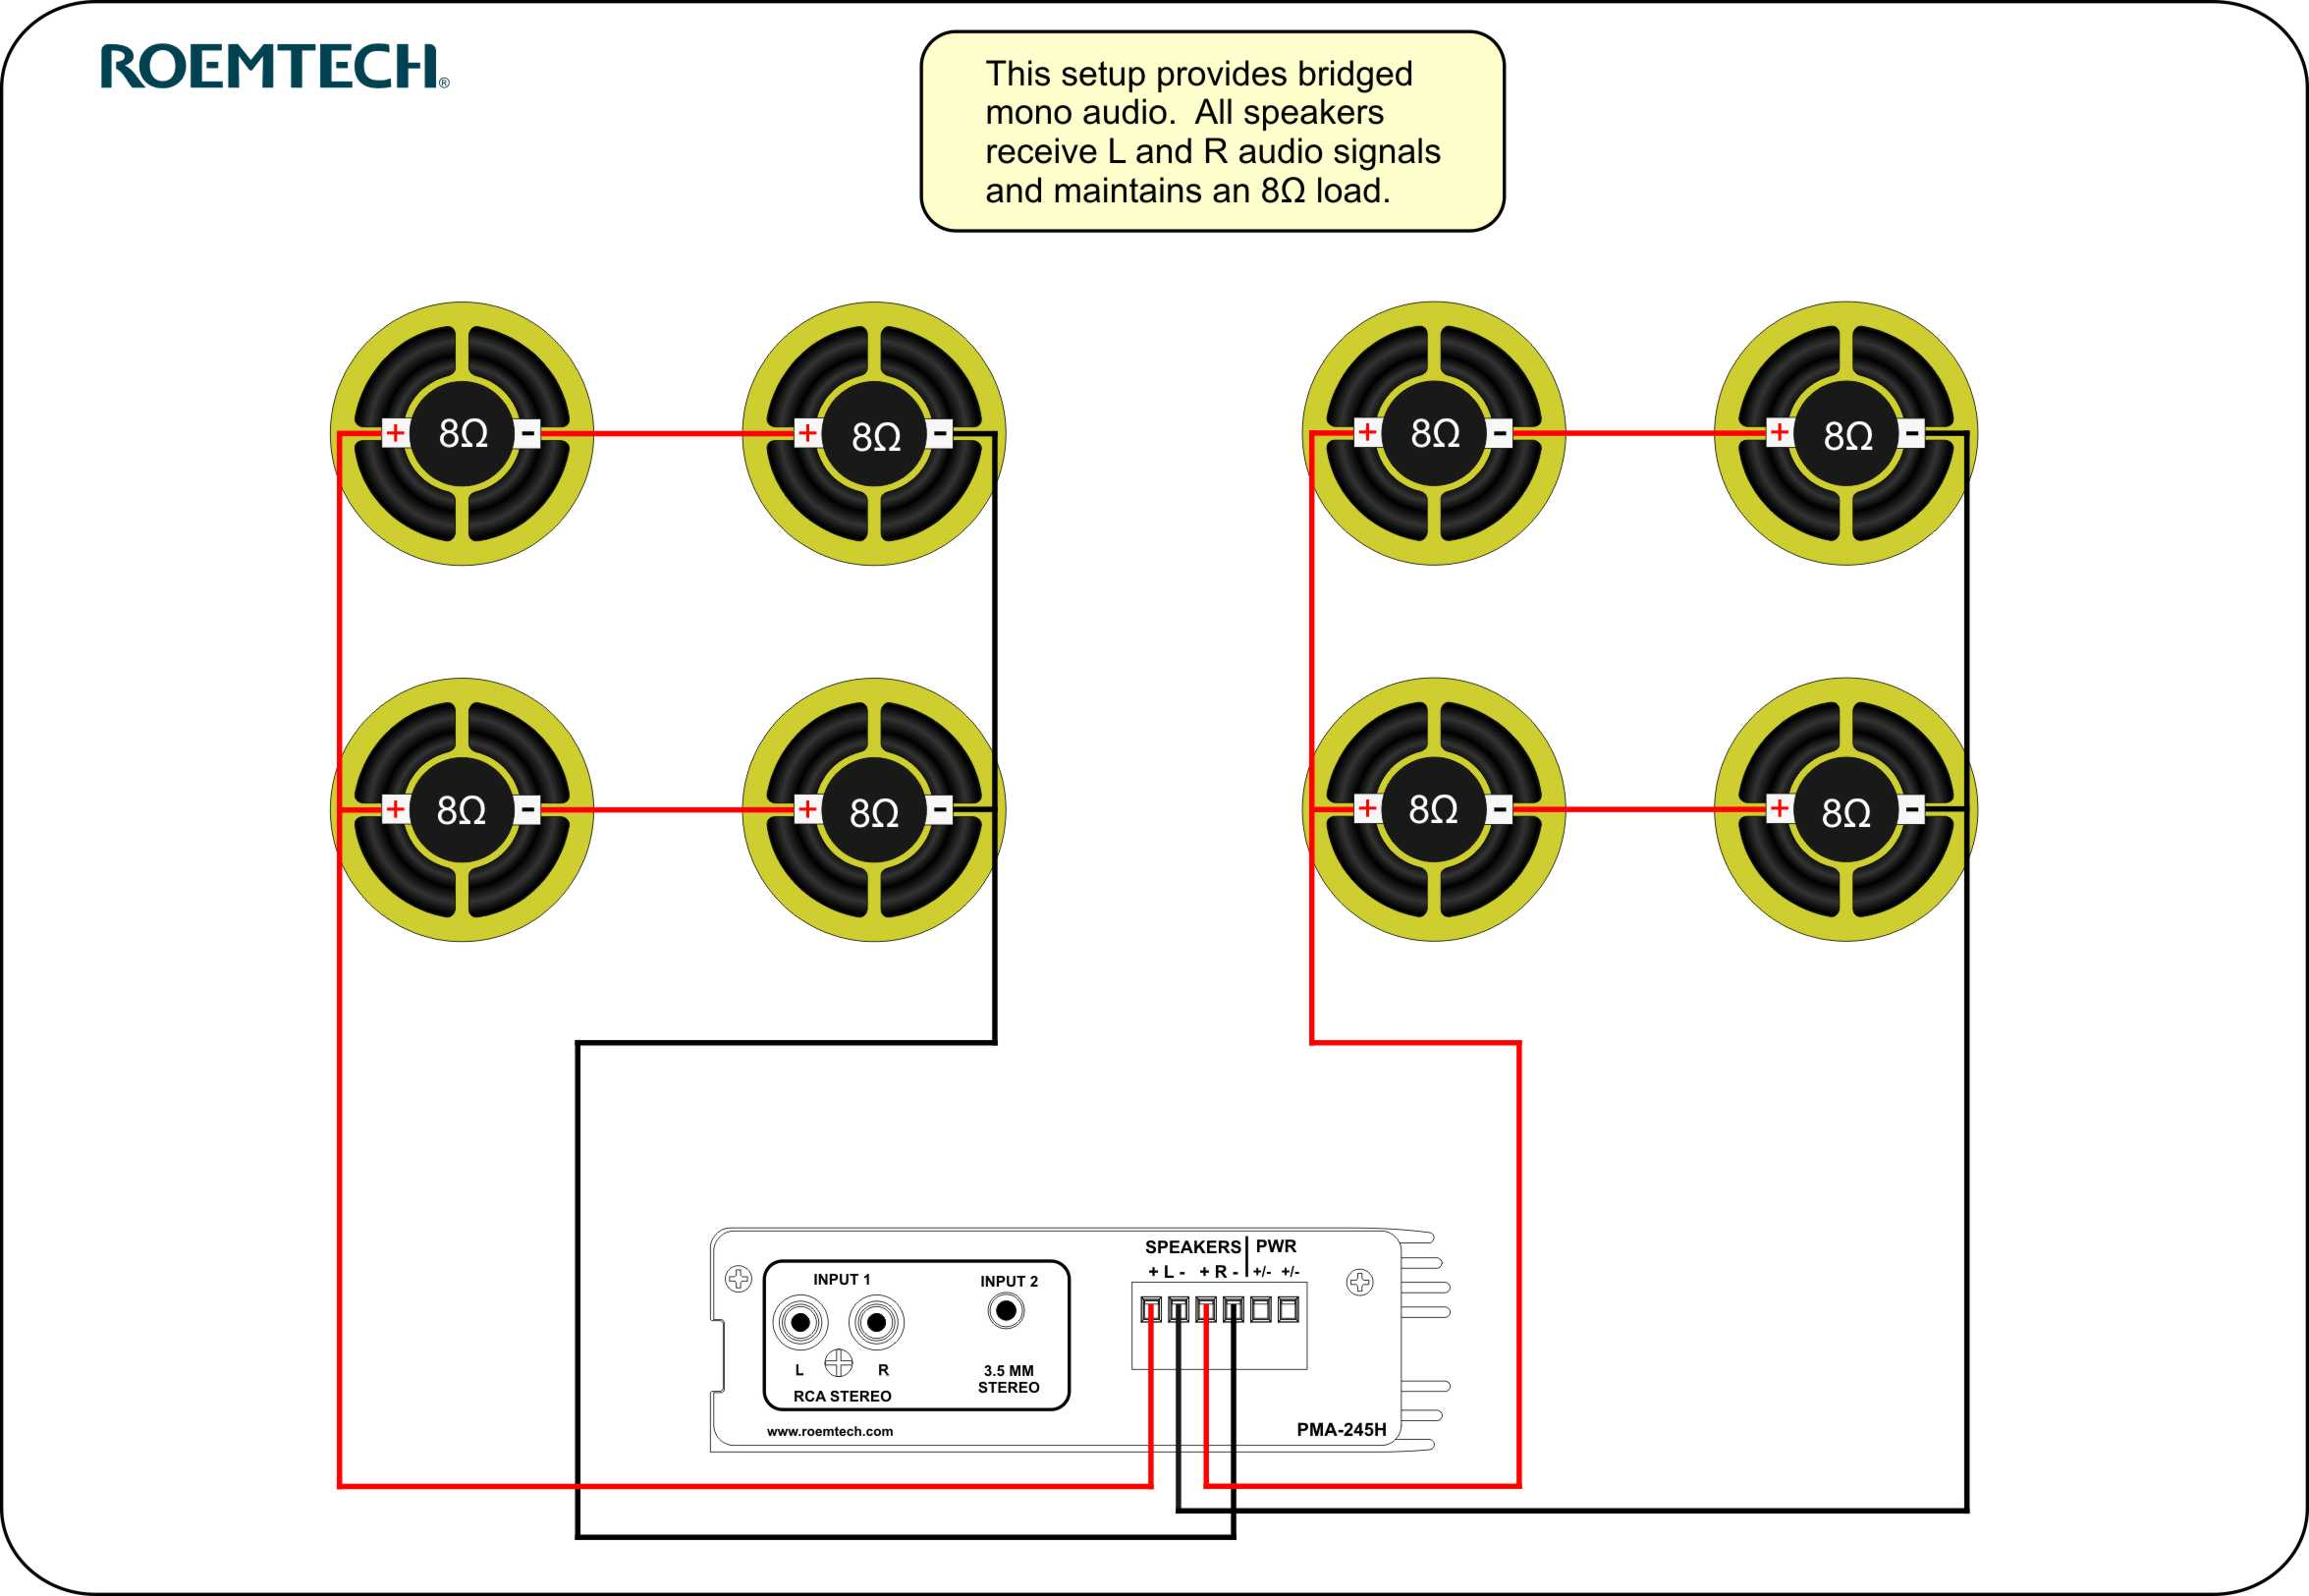 Wiring Diagram Speakers Layout Diagrams 2 Channel 4 Classroom Audio Systems Multiple Speaker Rh Roemtech Com Amp Symbol